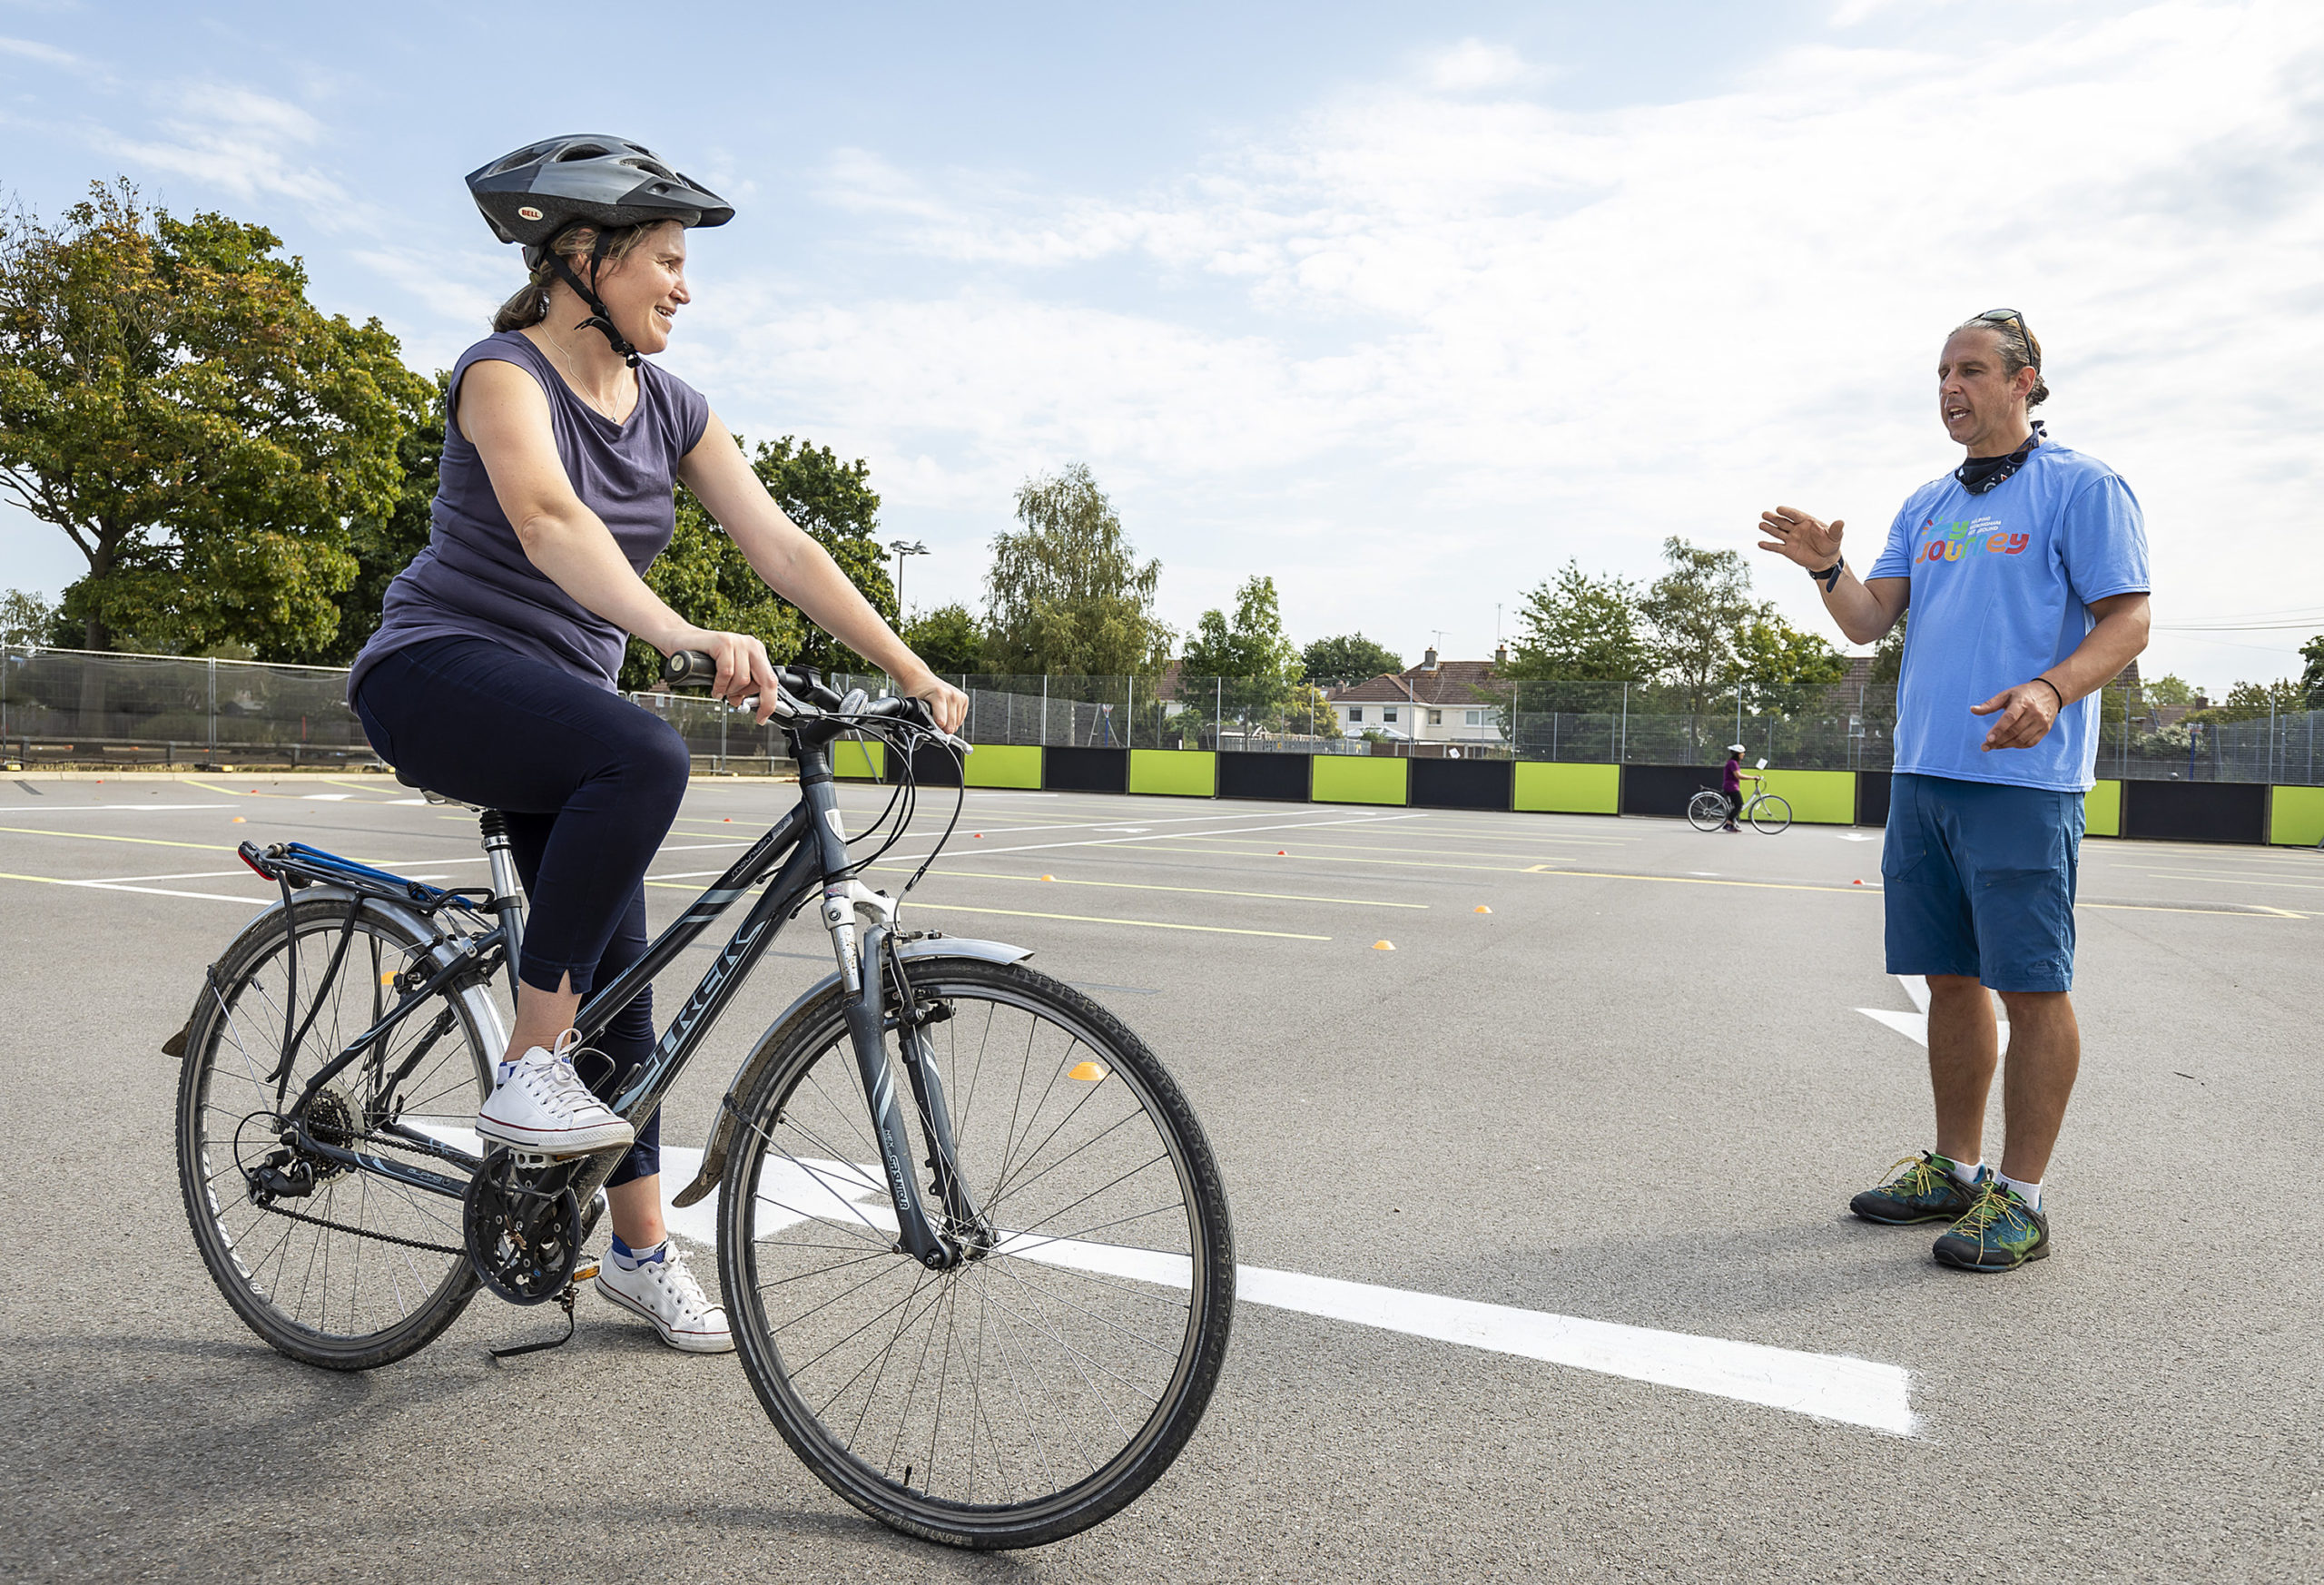 Lady on bicycle with man giving instructions